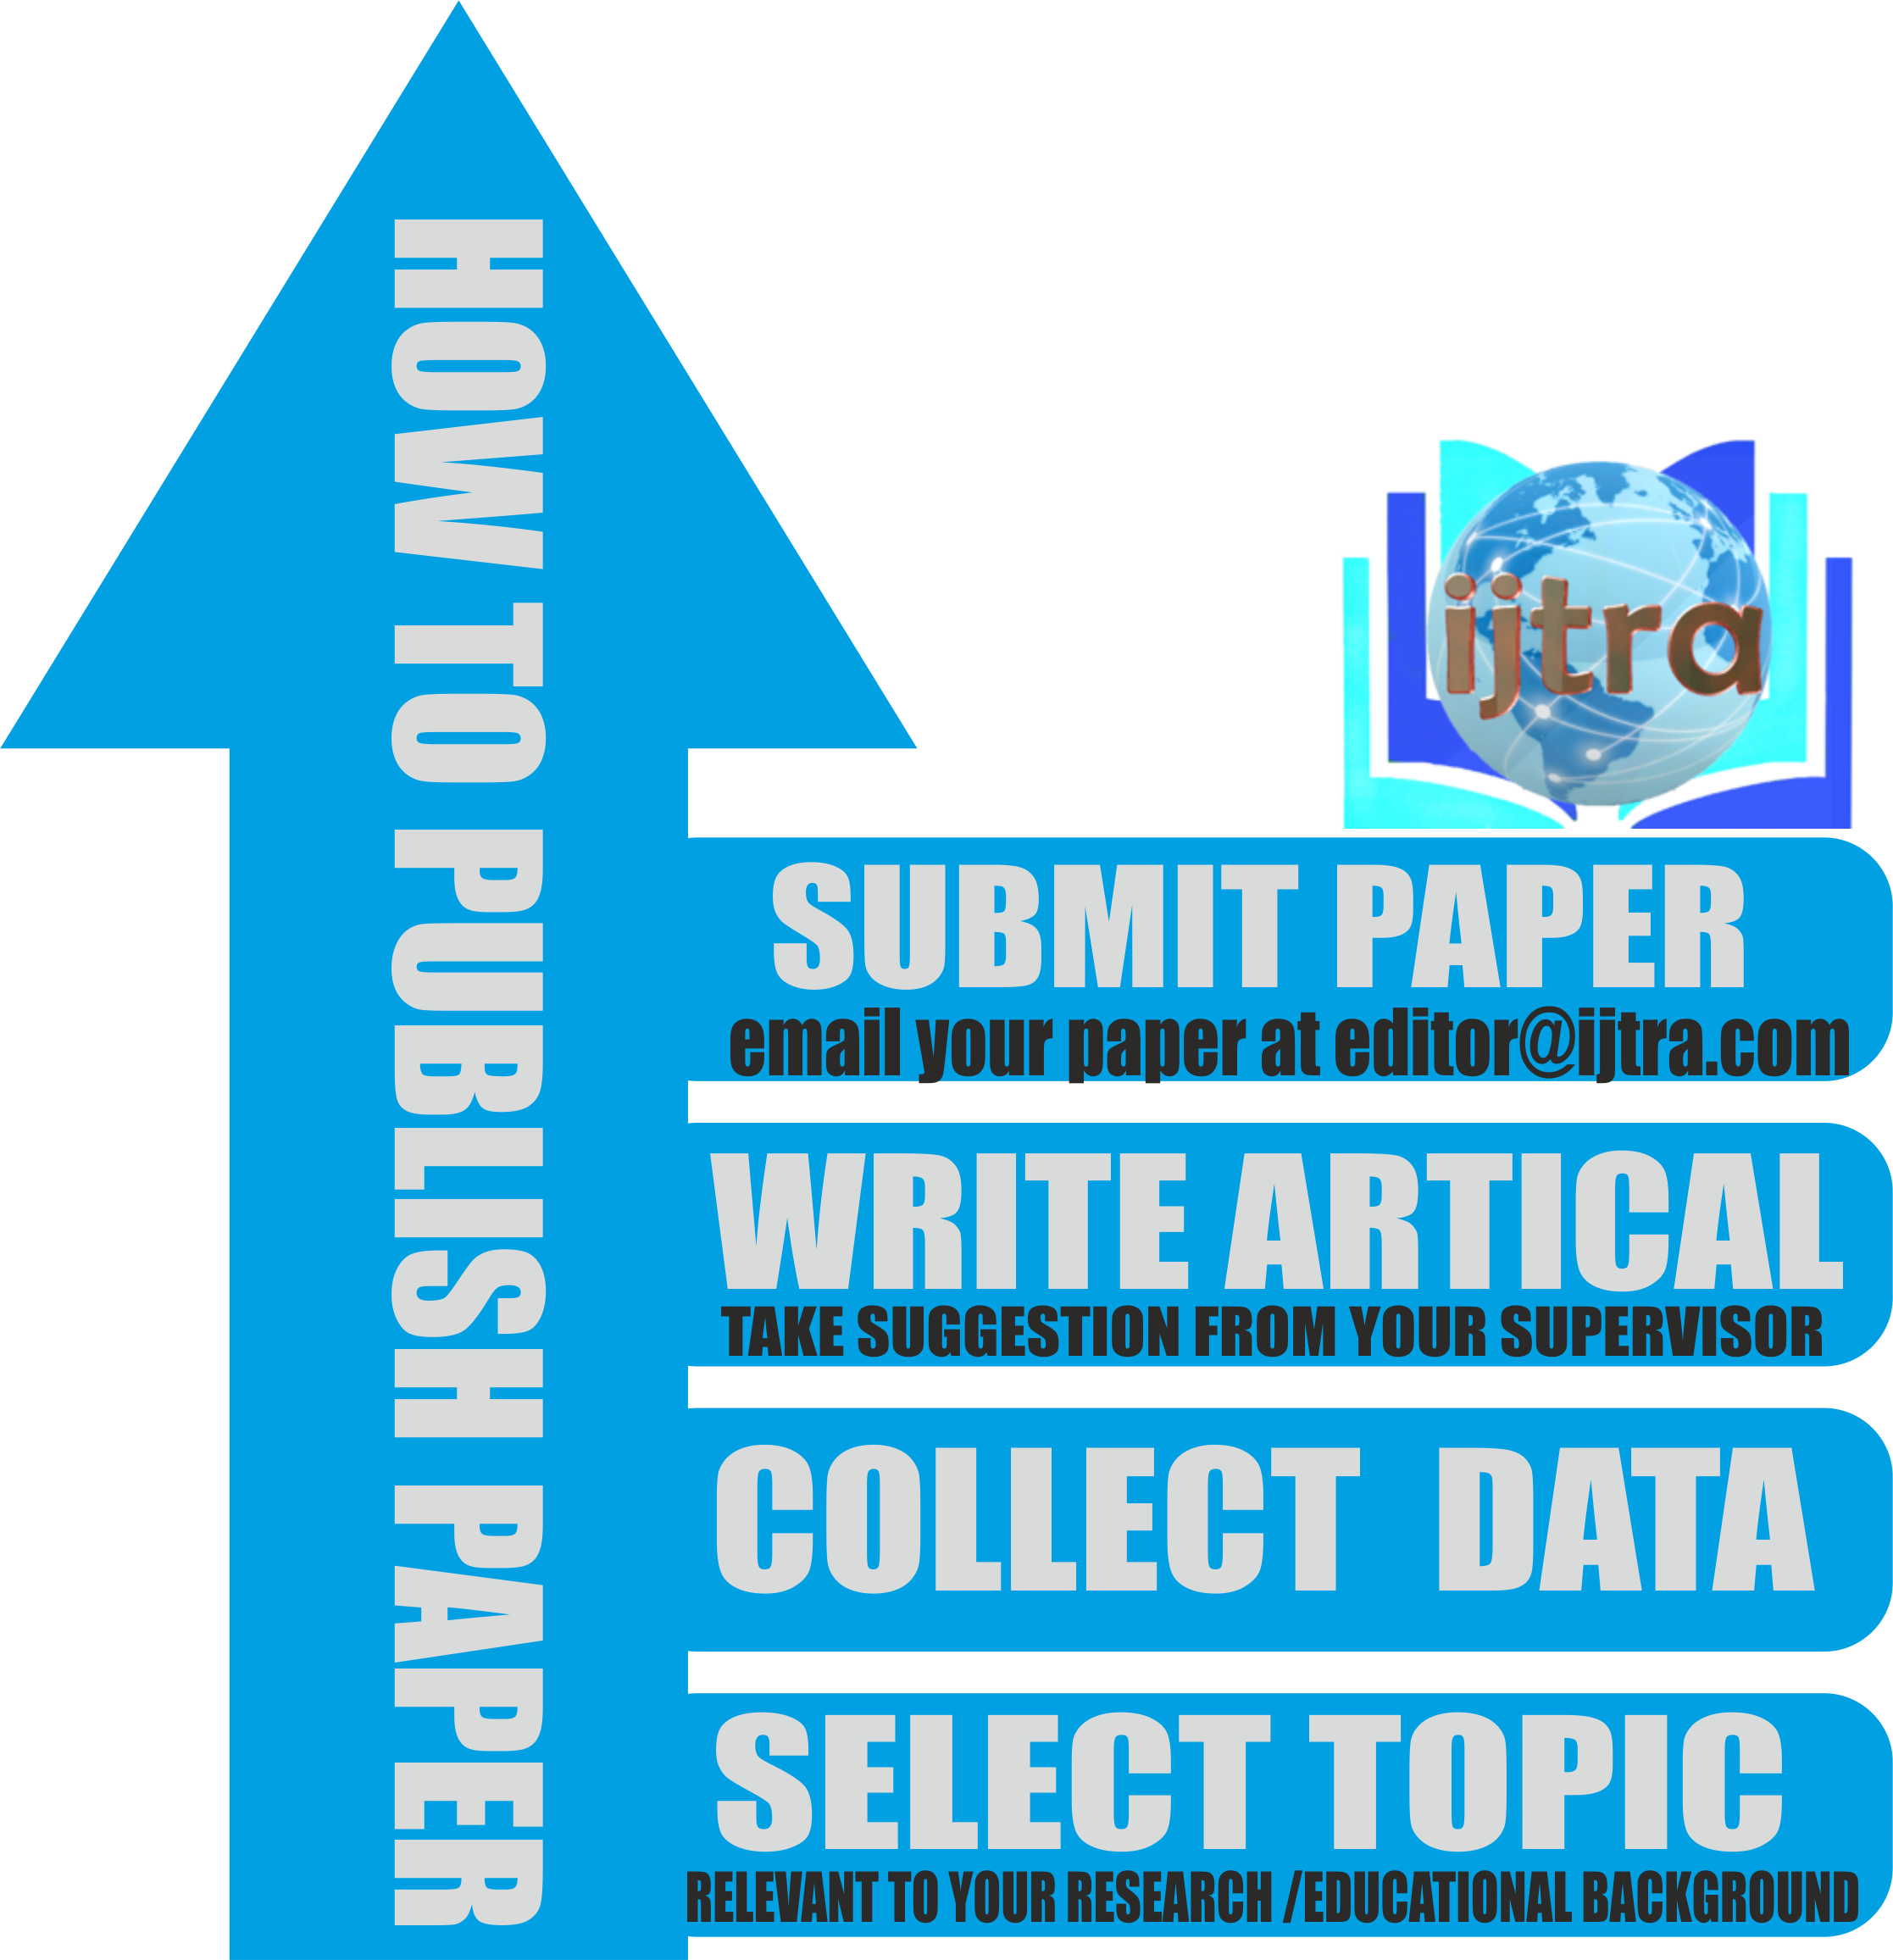 023 Ijtra Author Ins Research Paper Breathtaking Editor Free Editing Software On Text Full